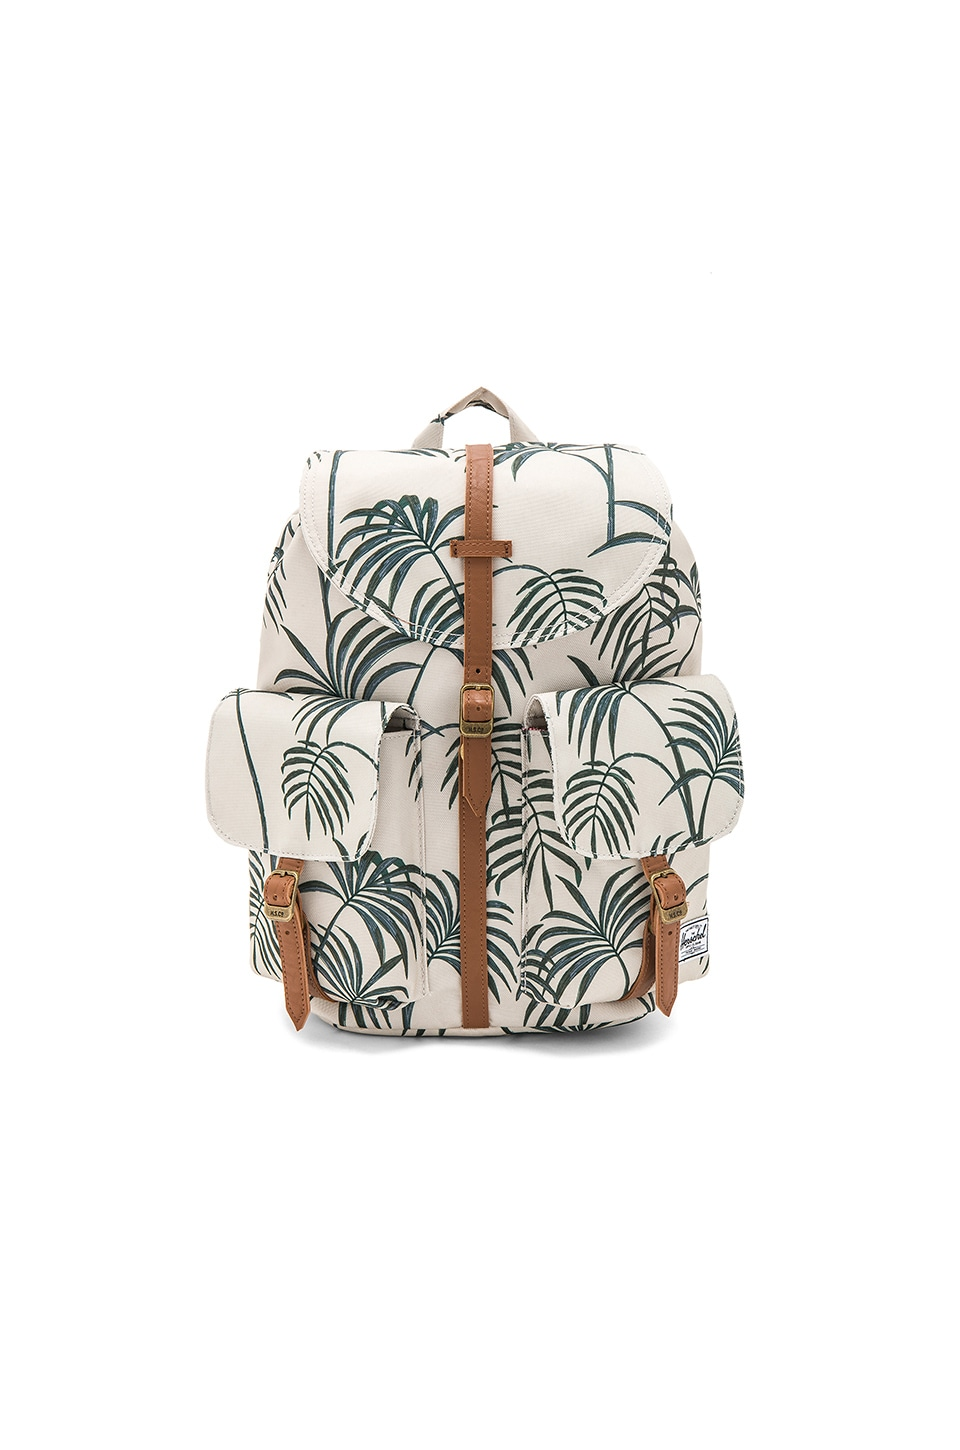 Herschel Supply Co. Dawson Backpack in Pelican Palm